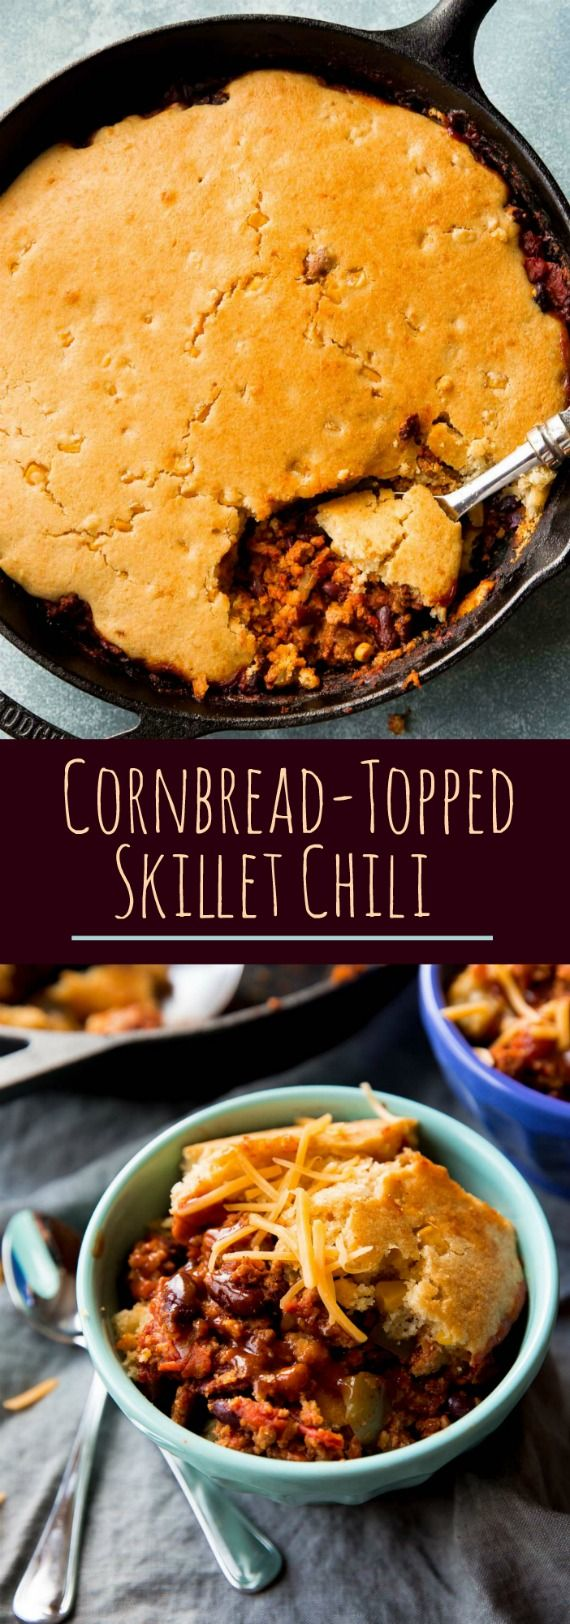 Cornbread and chili made in ONE PAN! Ultimate comfort food on sallysbakingaddiction.com